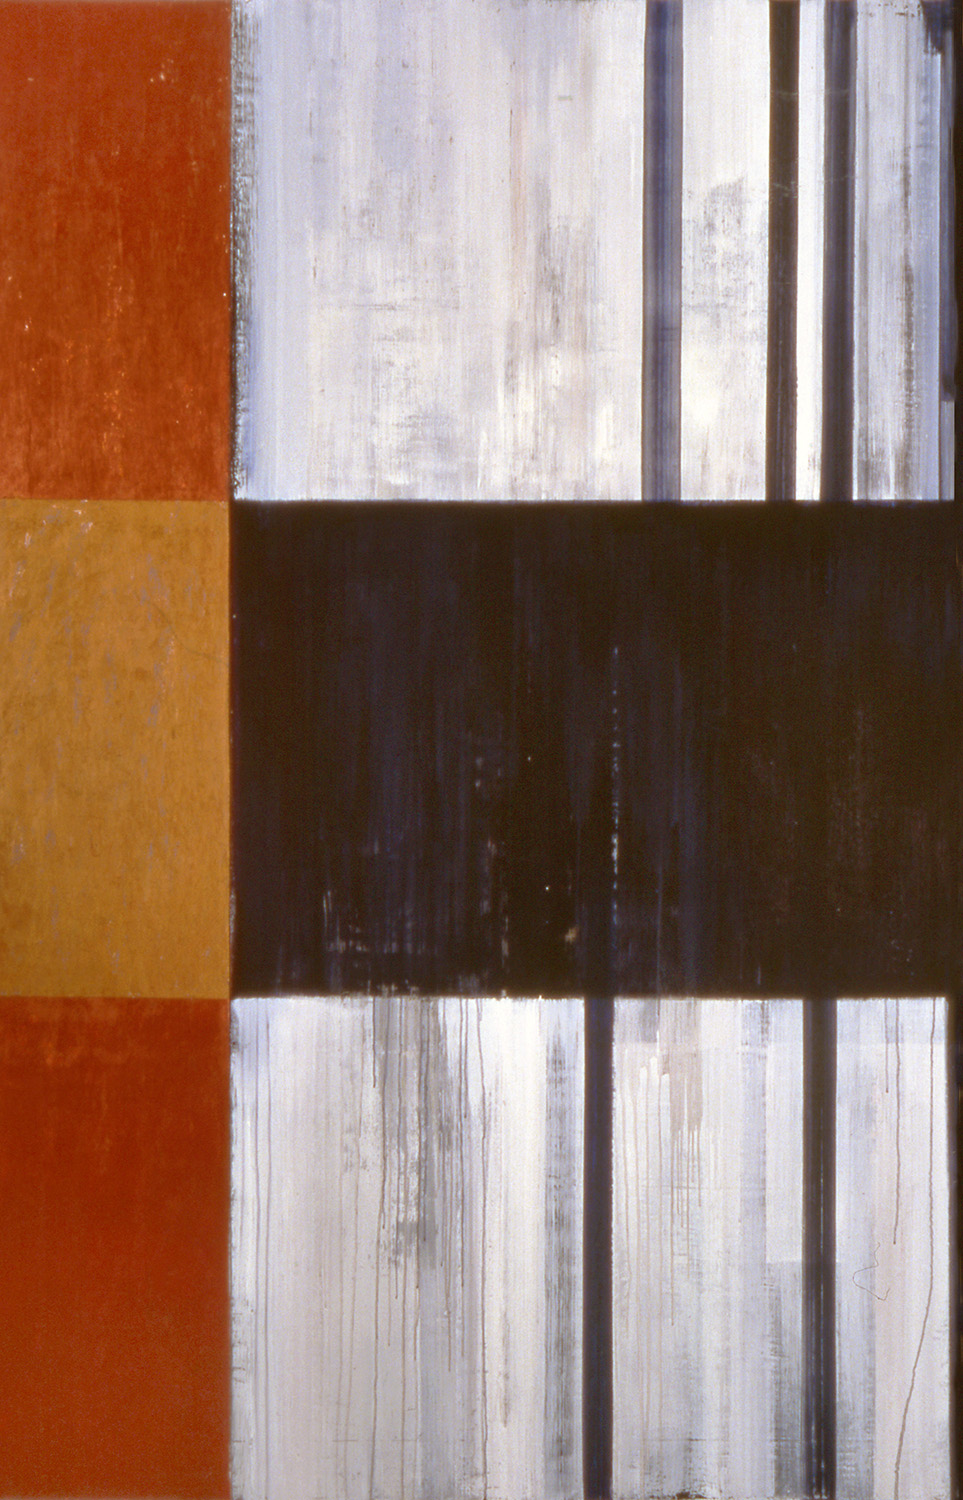 Step, 1993, Oil, acrylic on canvas over panels, 72 x 48 inches.